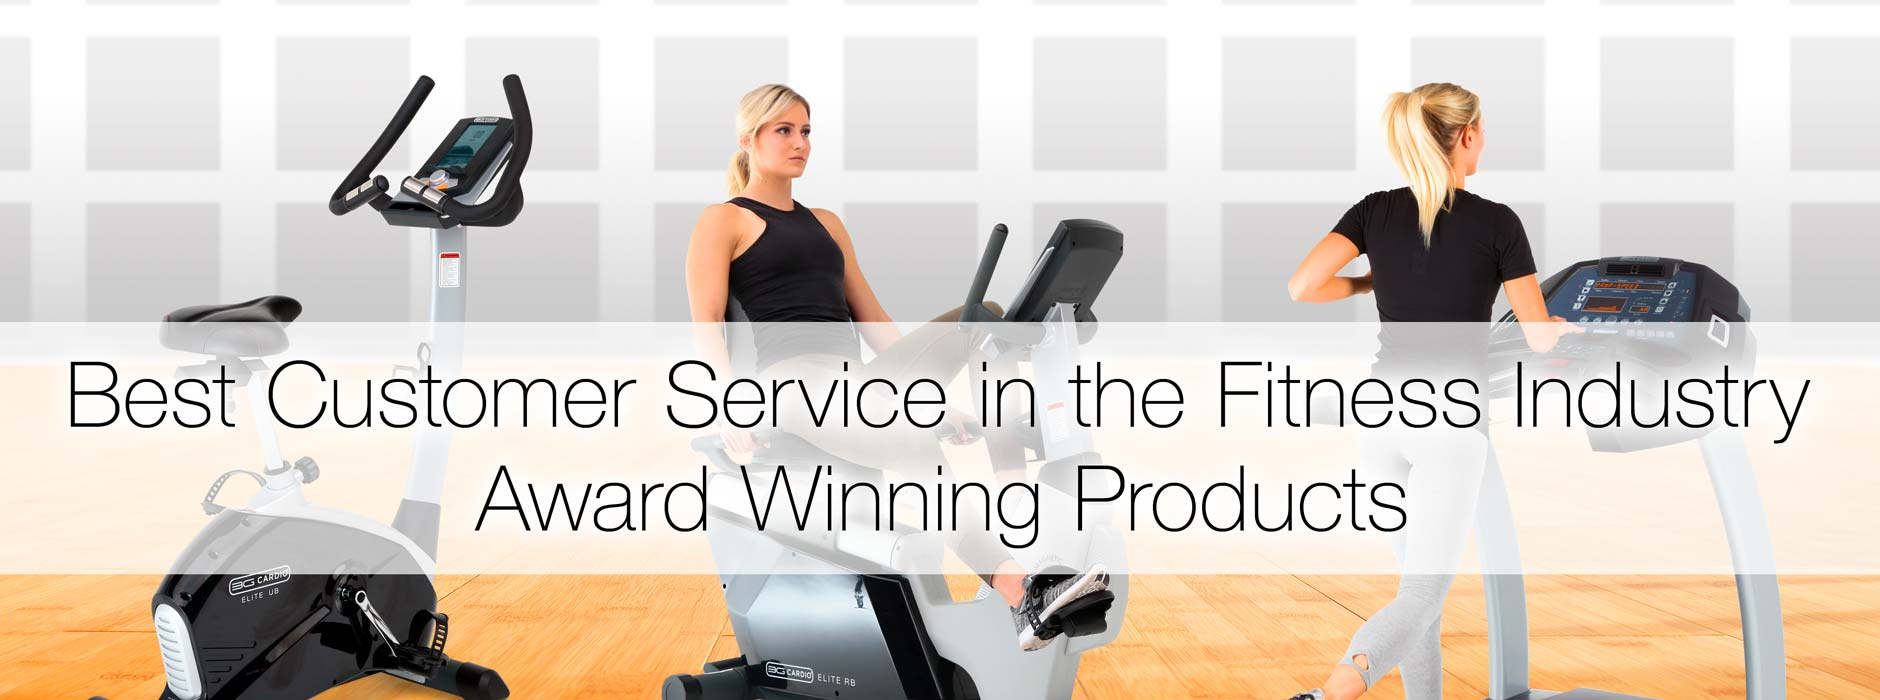 Best Customer Service in the Fitness Industry Award Winning Products